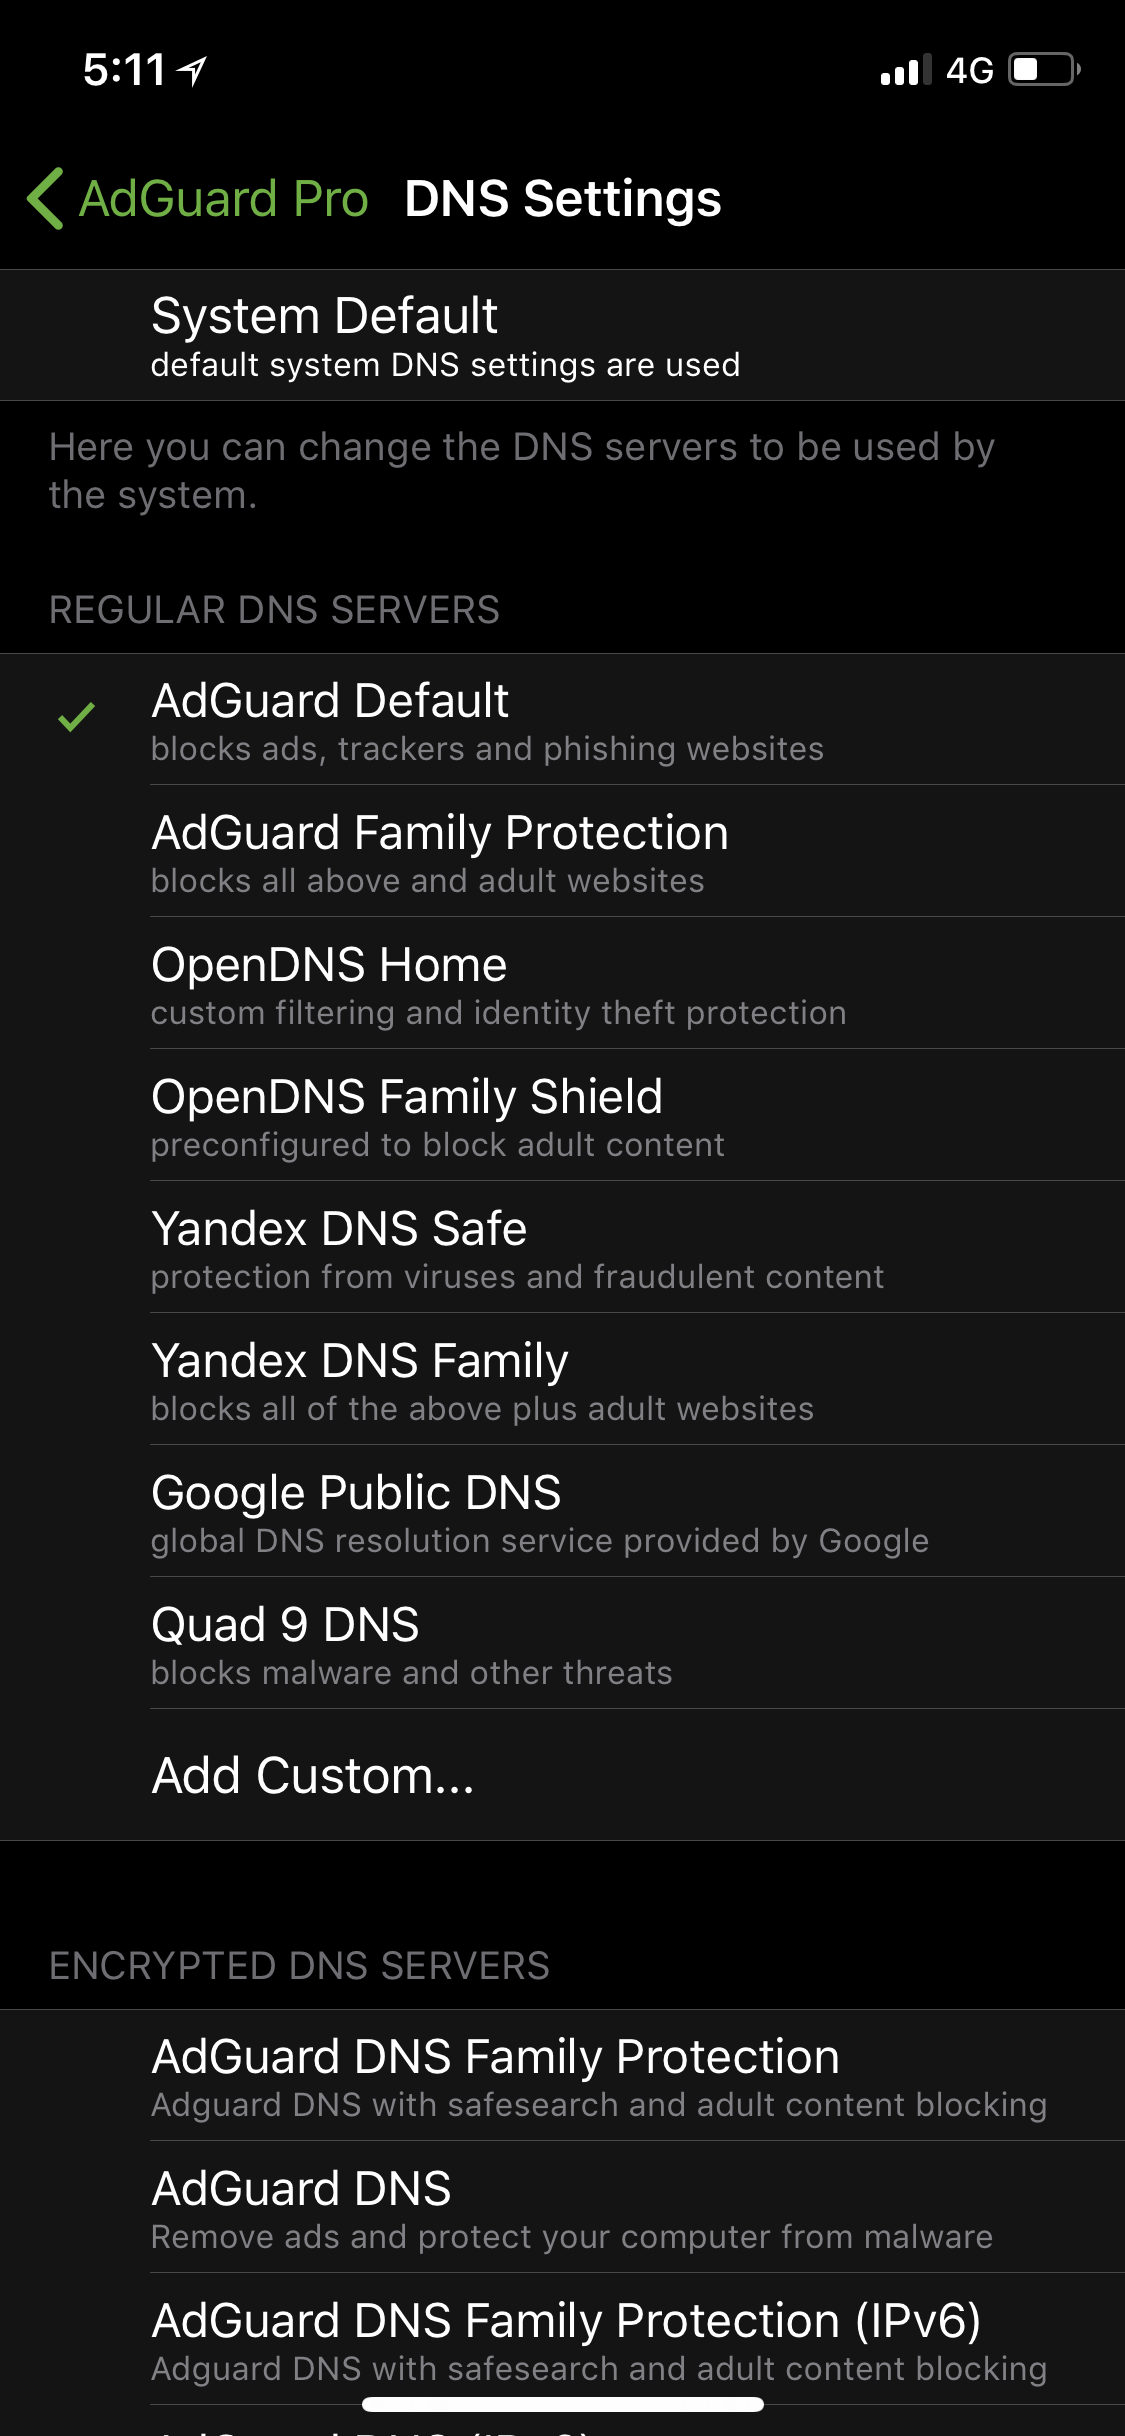 Dozens of DNS servers are available on the app, and you can also use your own custom server.